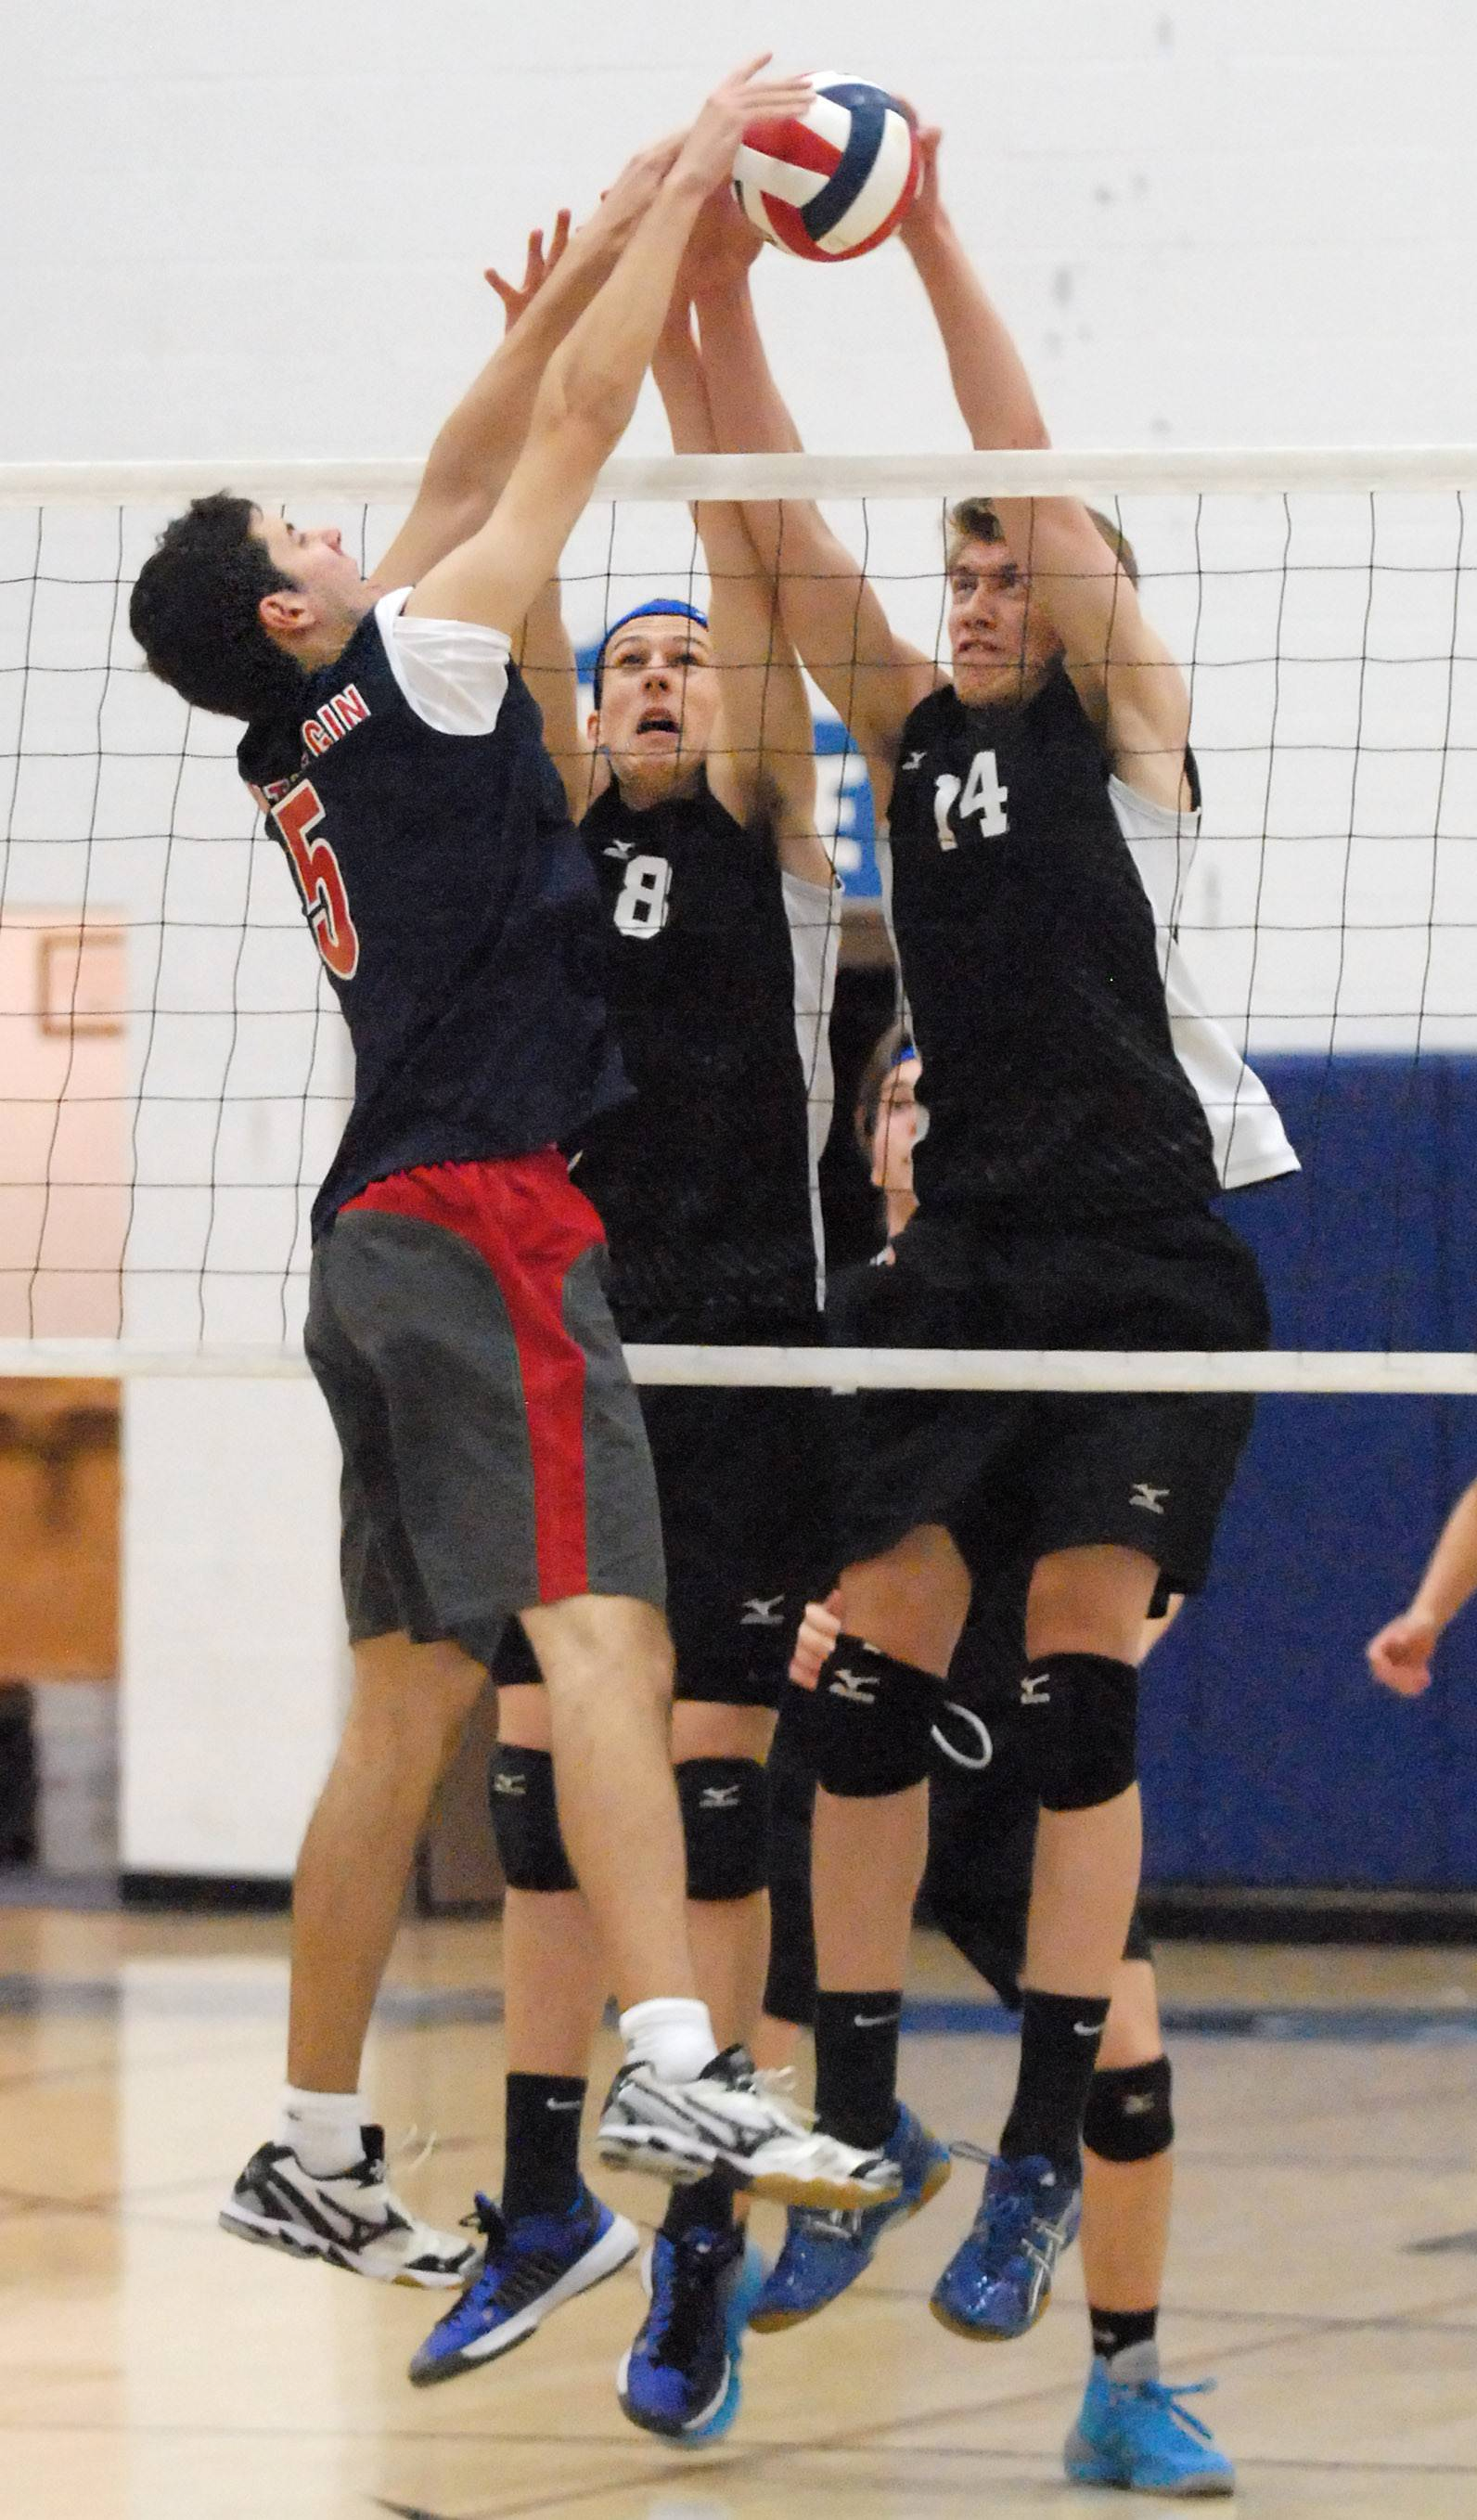 South Elgin's Dan Gibadlo tips the ball over the net as St. Charles North's Jeff Rollins (8) and Jack Bujko (14) defend at the net in the first match on Thursday, May 1.